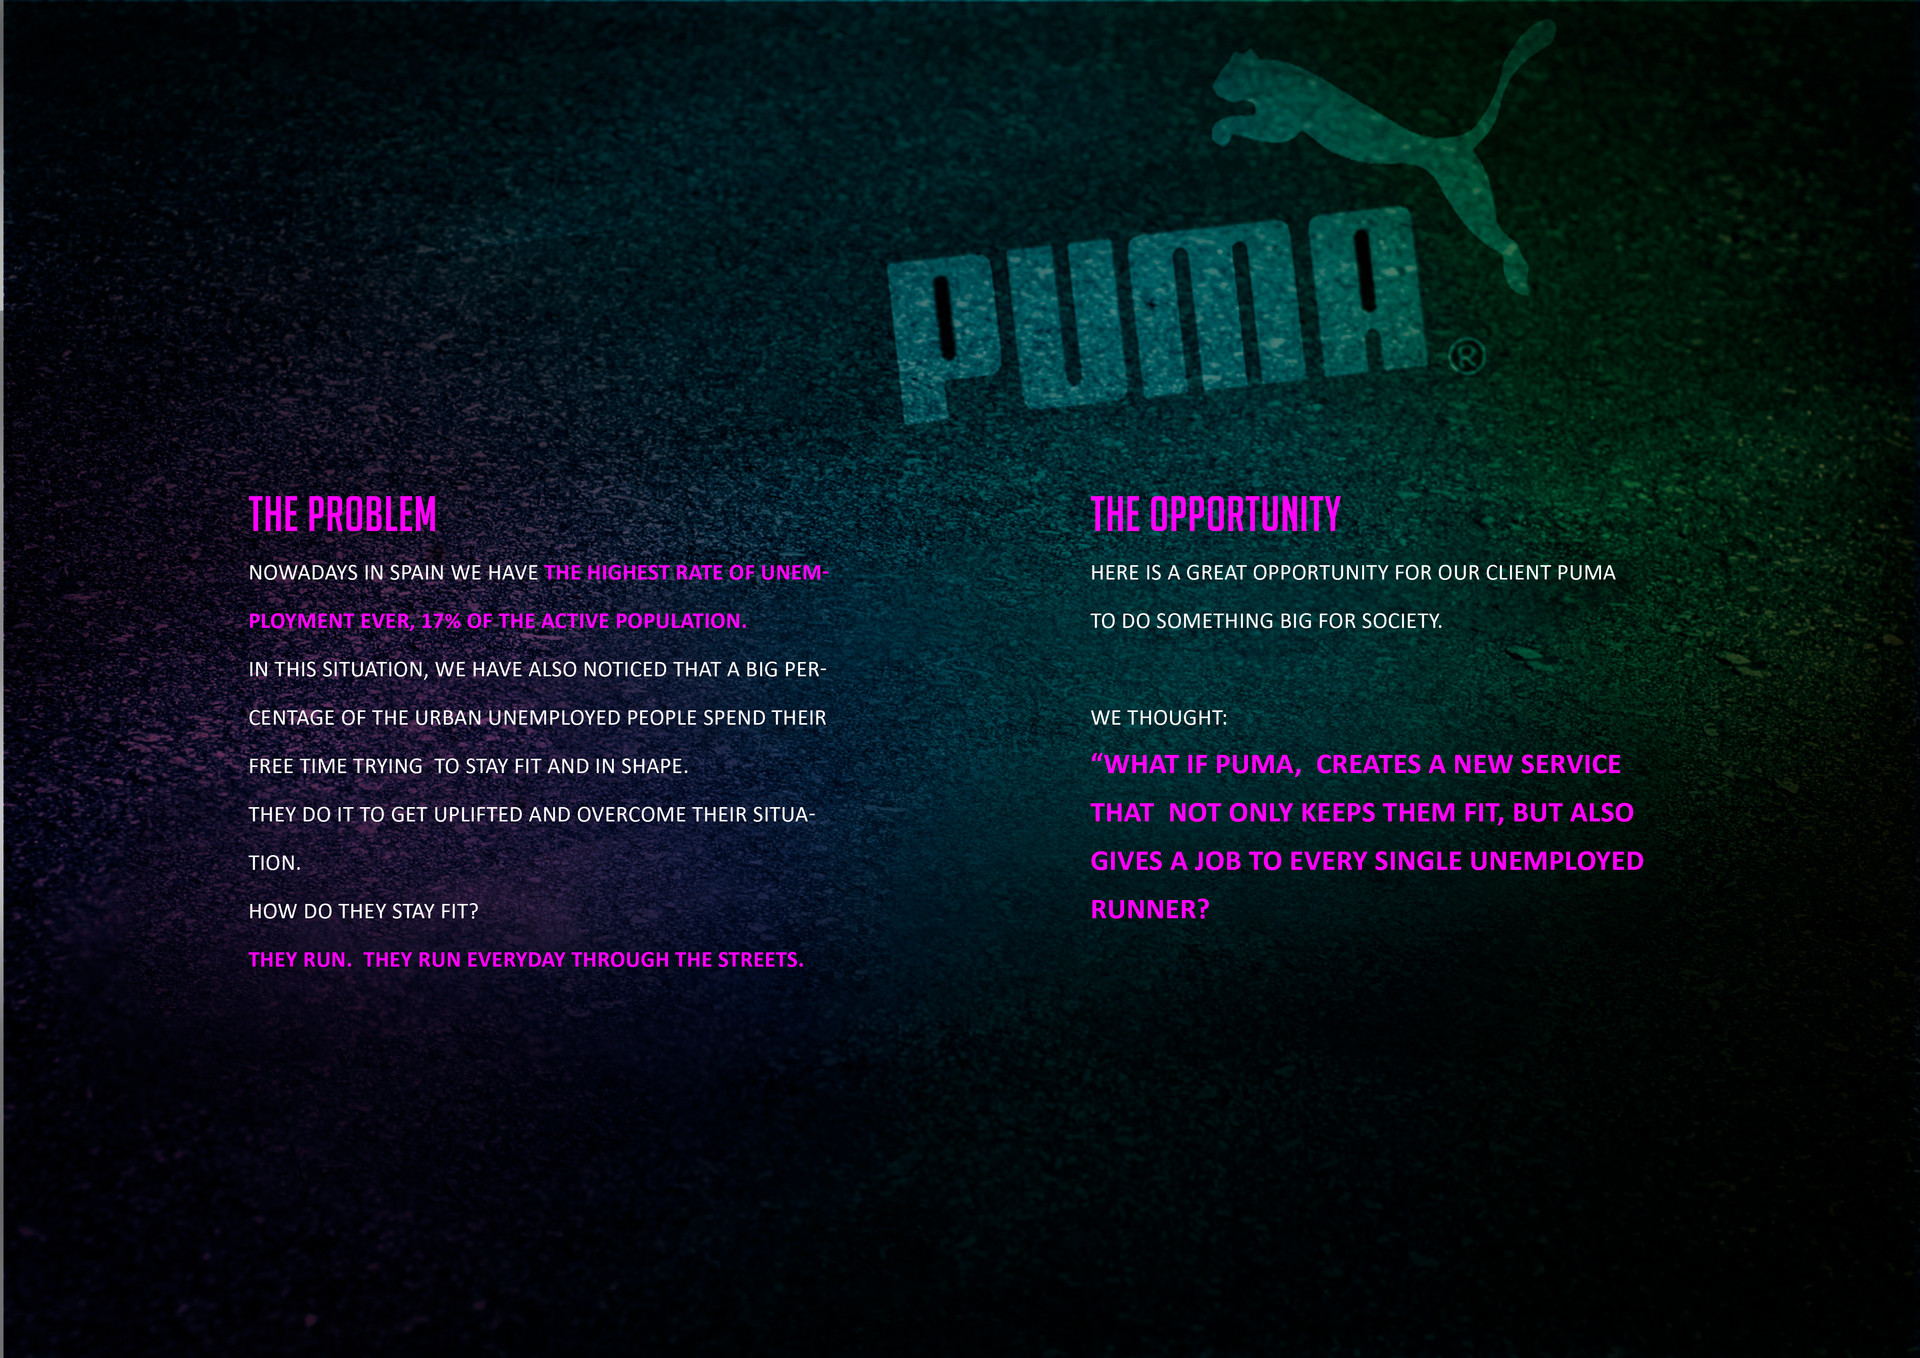 puma-running-delivery_page_1.jpg